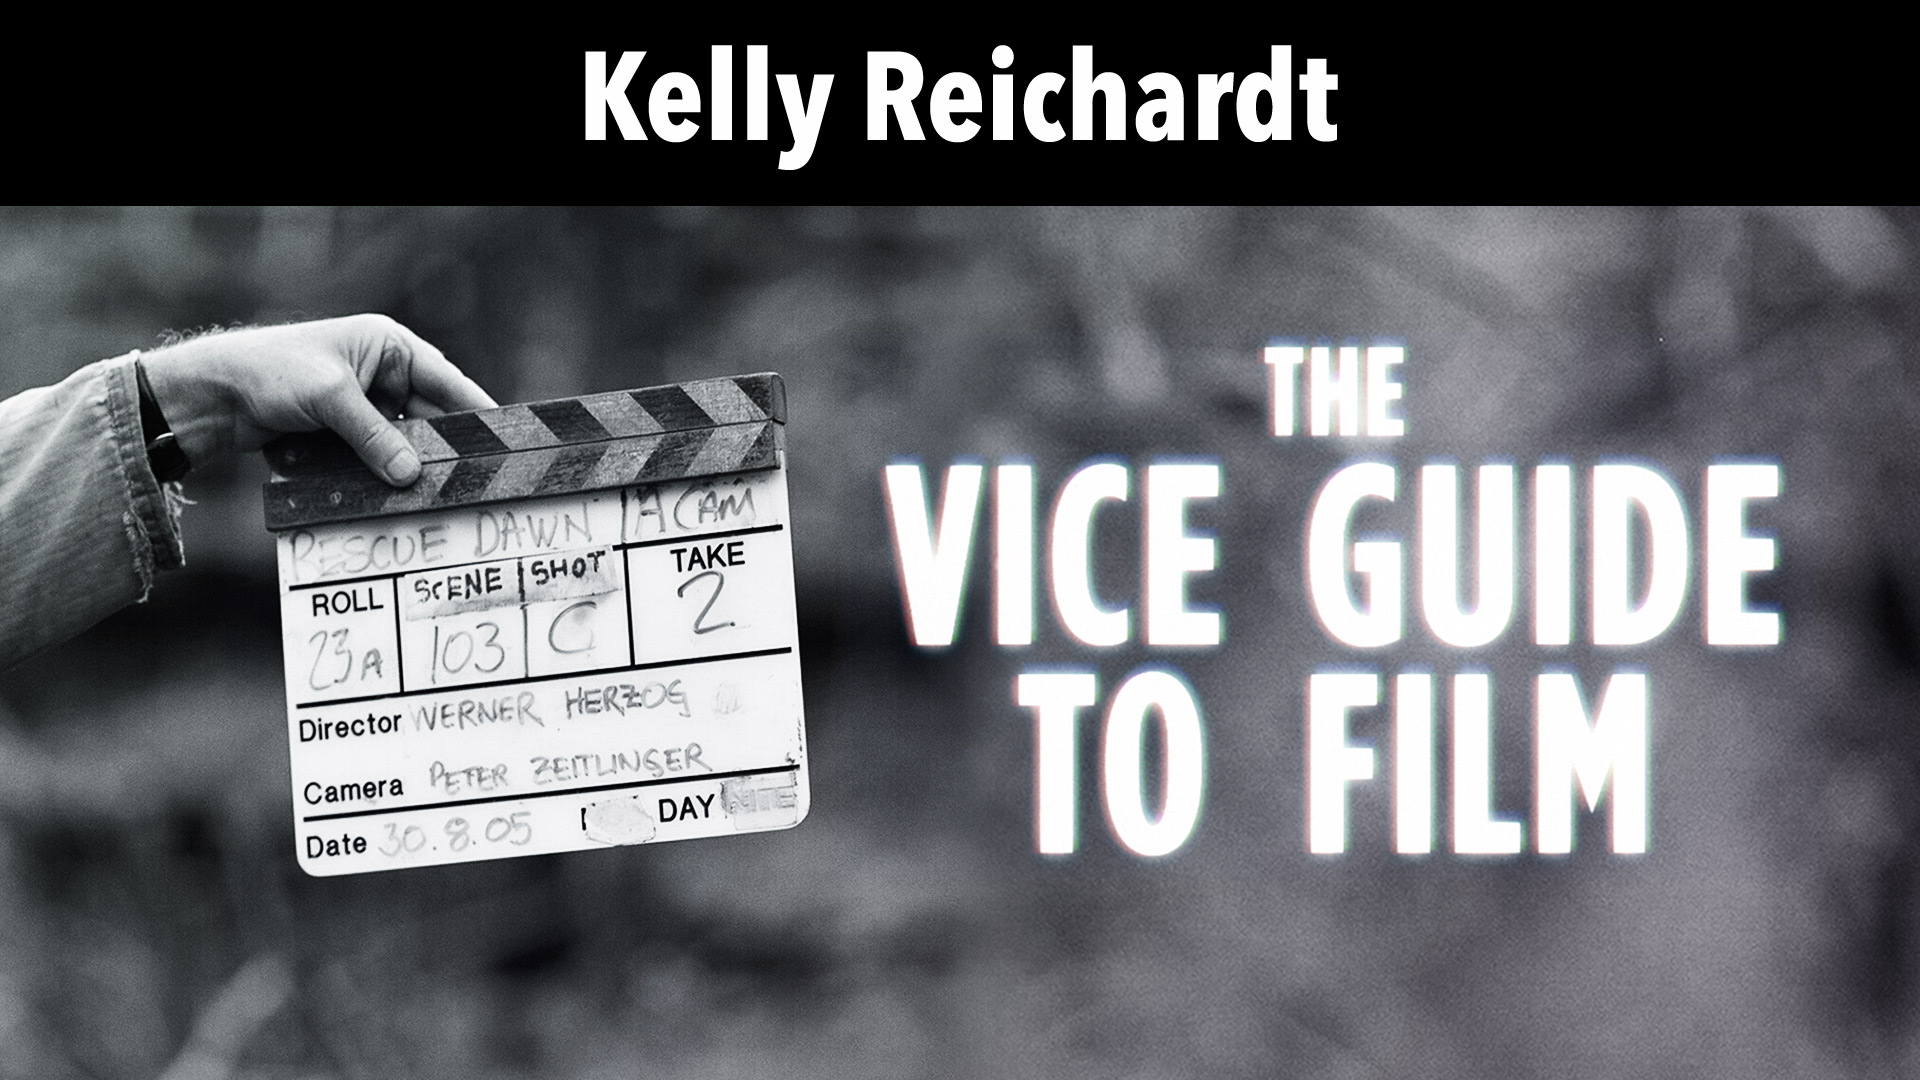 Kelly Reichardt: Vice Guide To Film